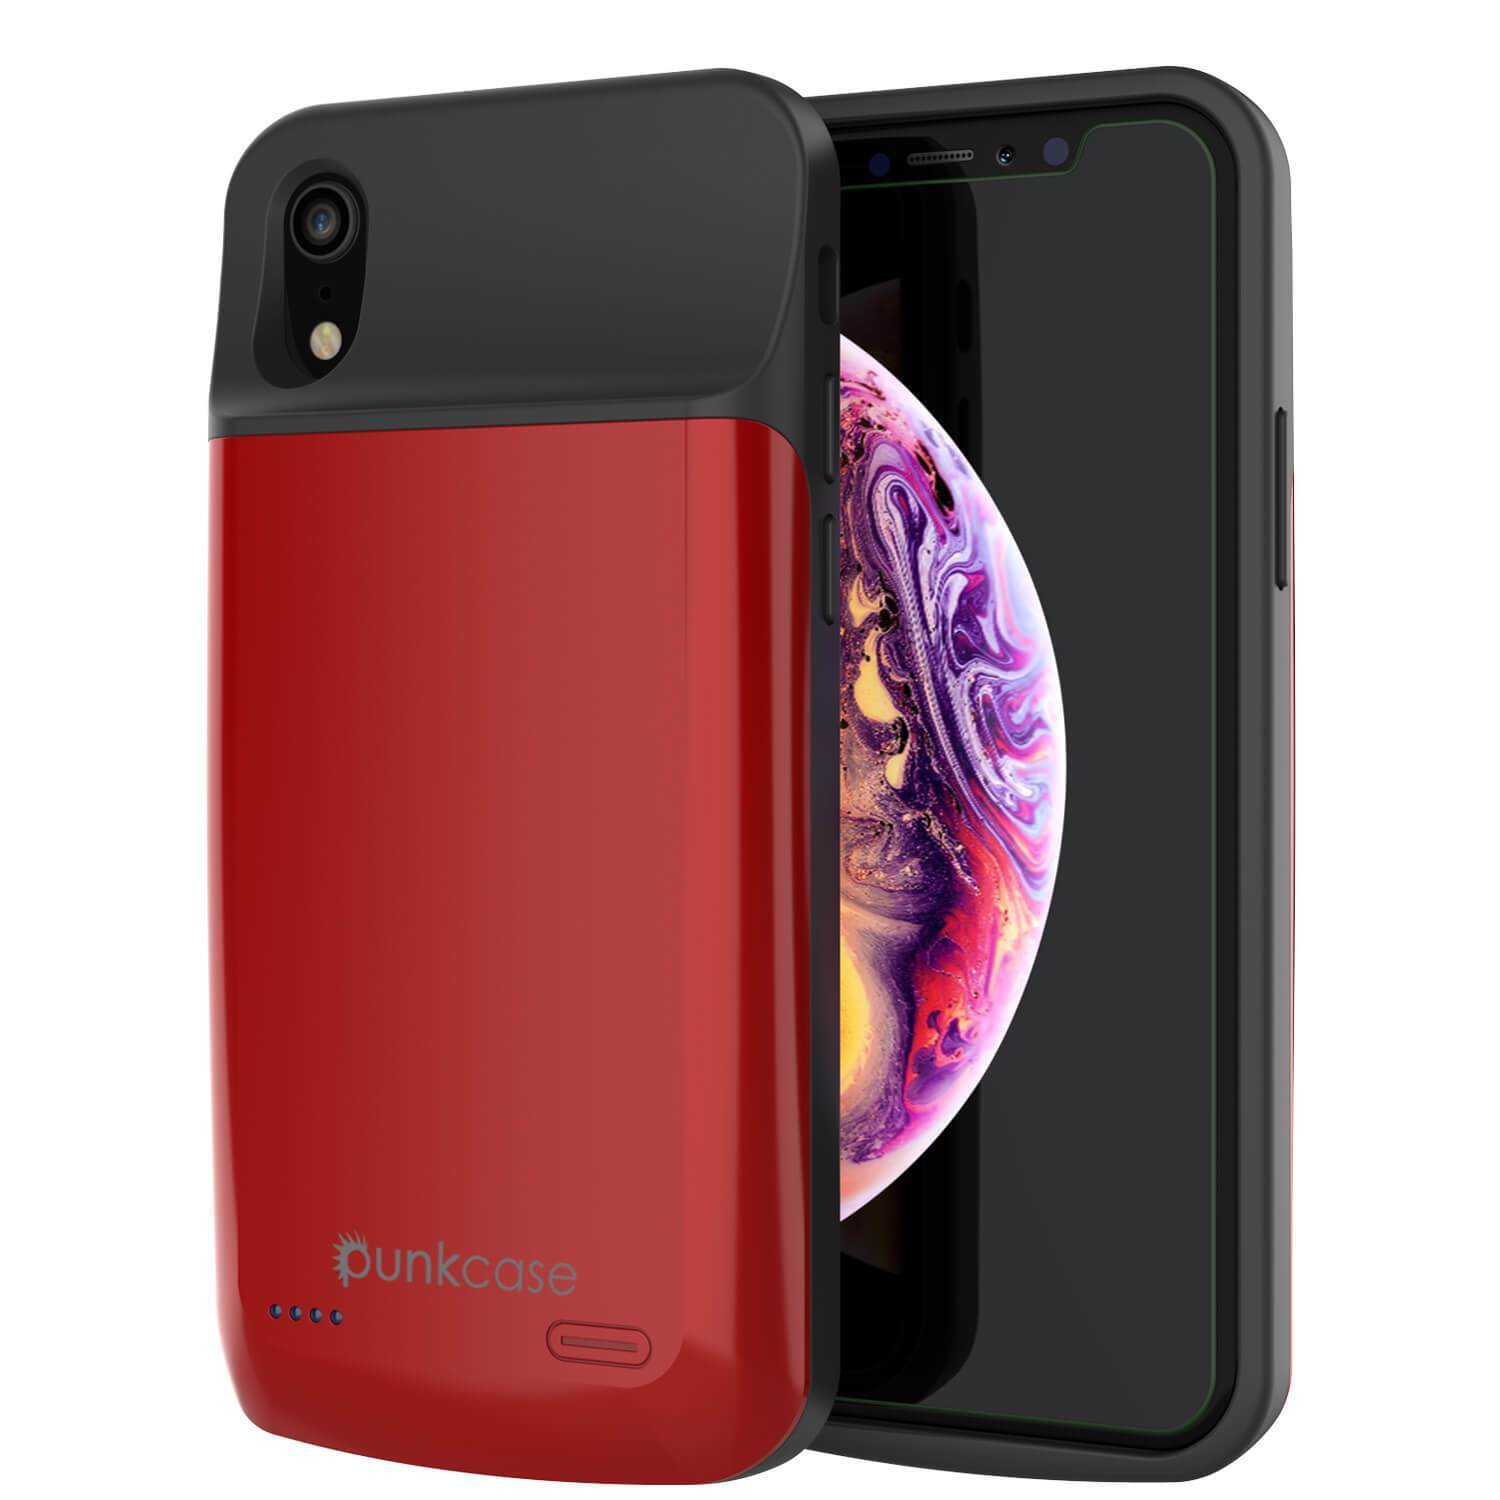 iPhone 11 Pro Battery Case, PunkJuice 5000mAH Fast Charging Power Bank W/ Screen Protector | [Red]